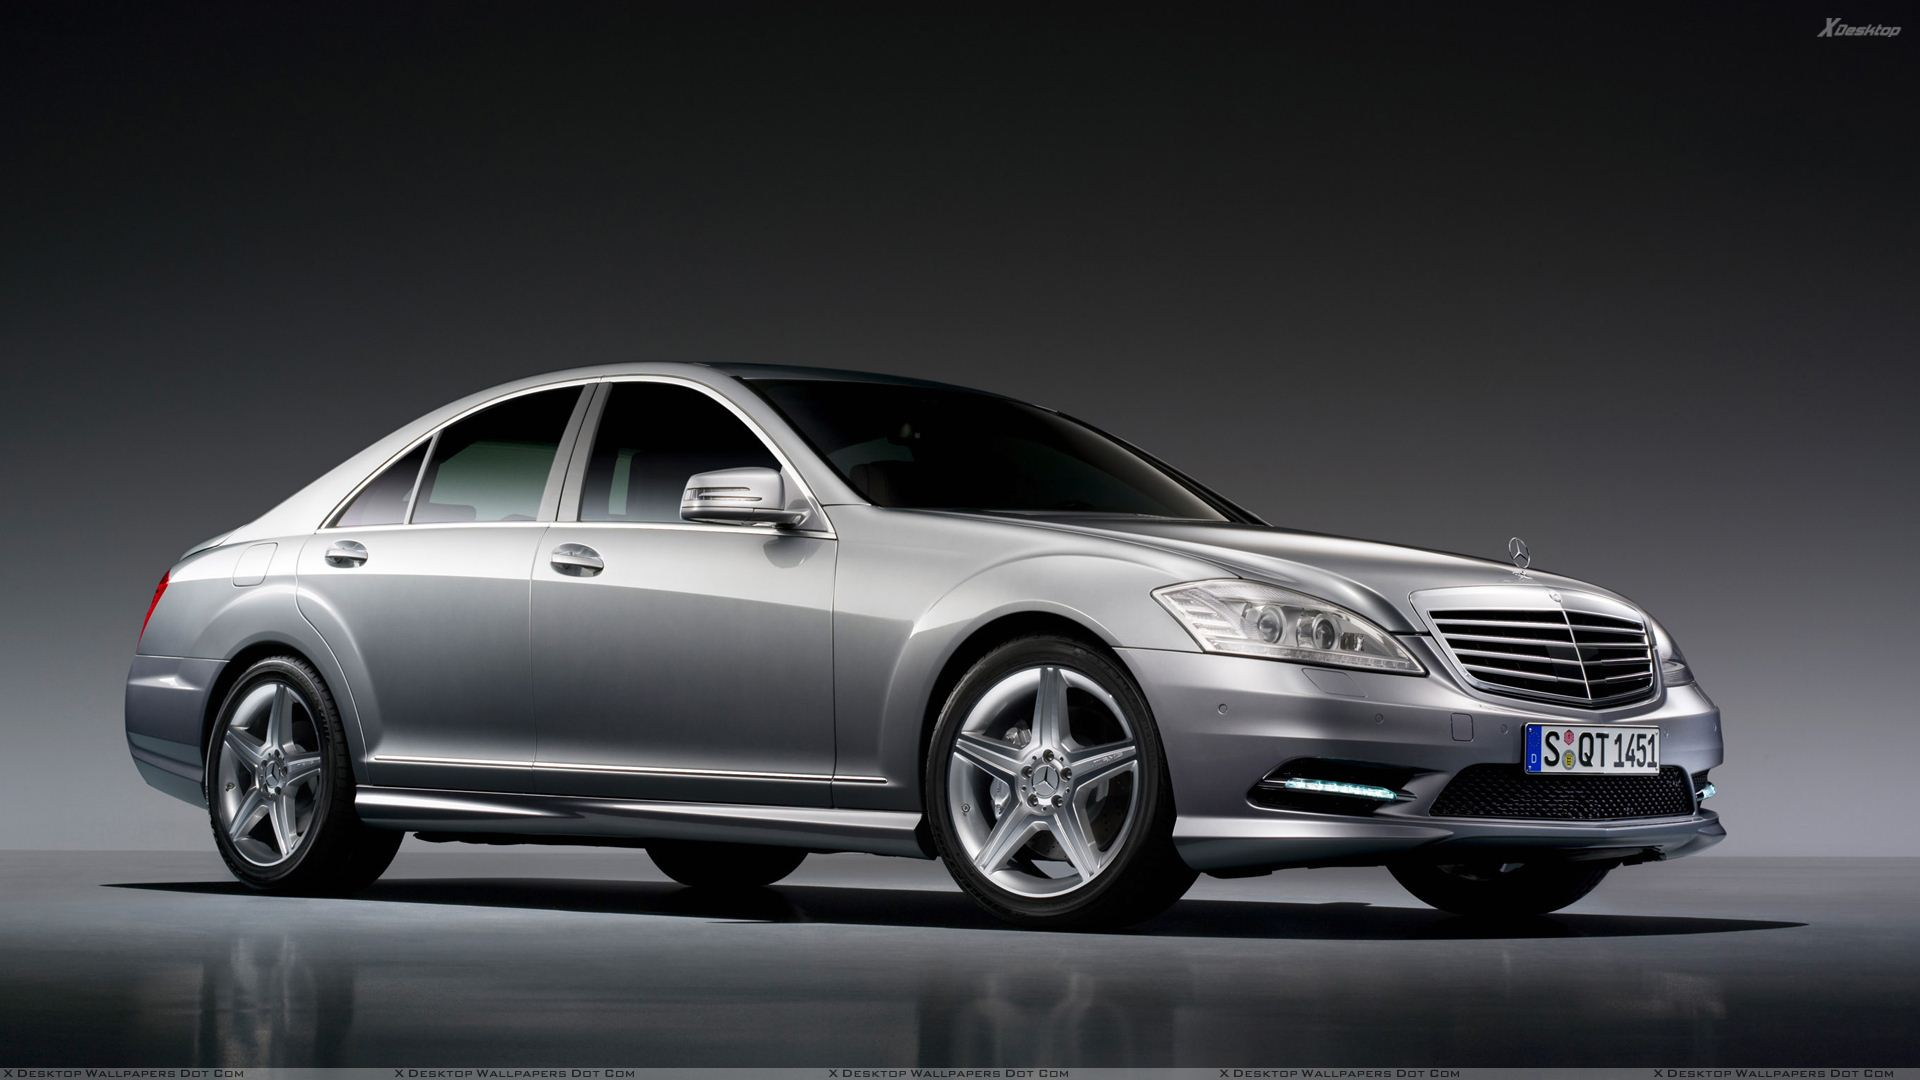 2009 mercedes benz s500 side front pose in grey wallpaper